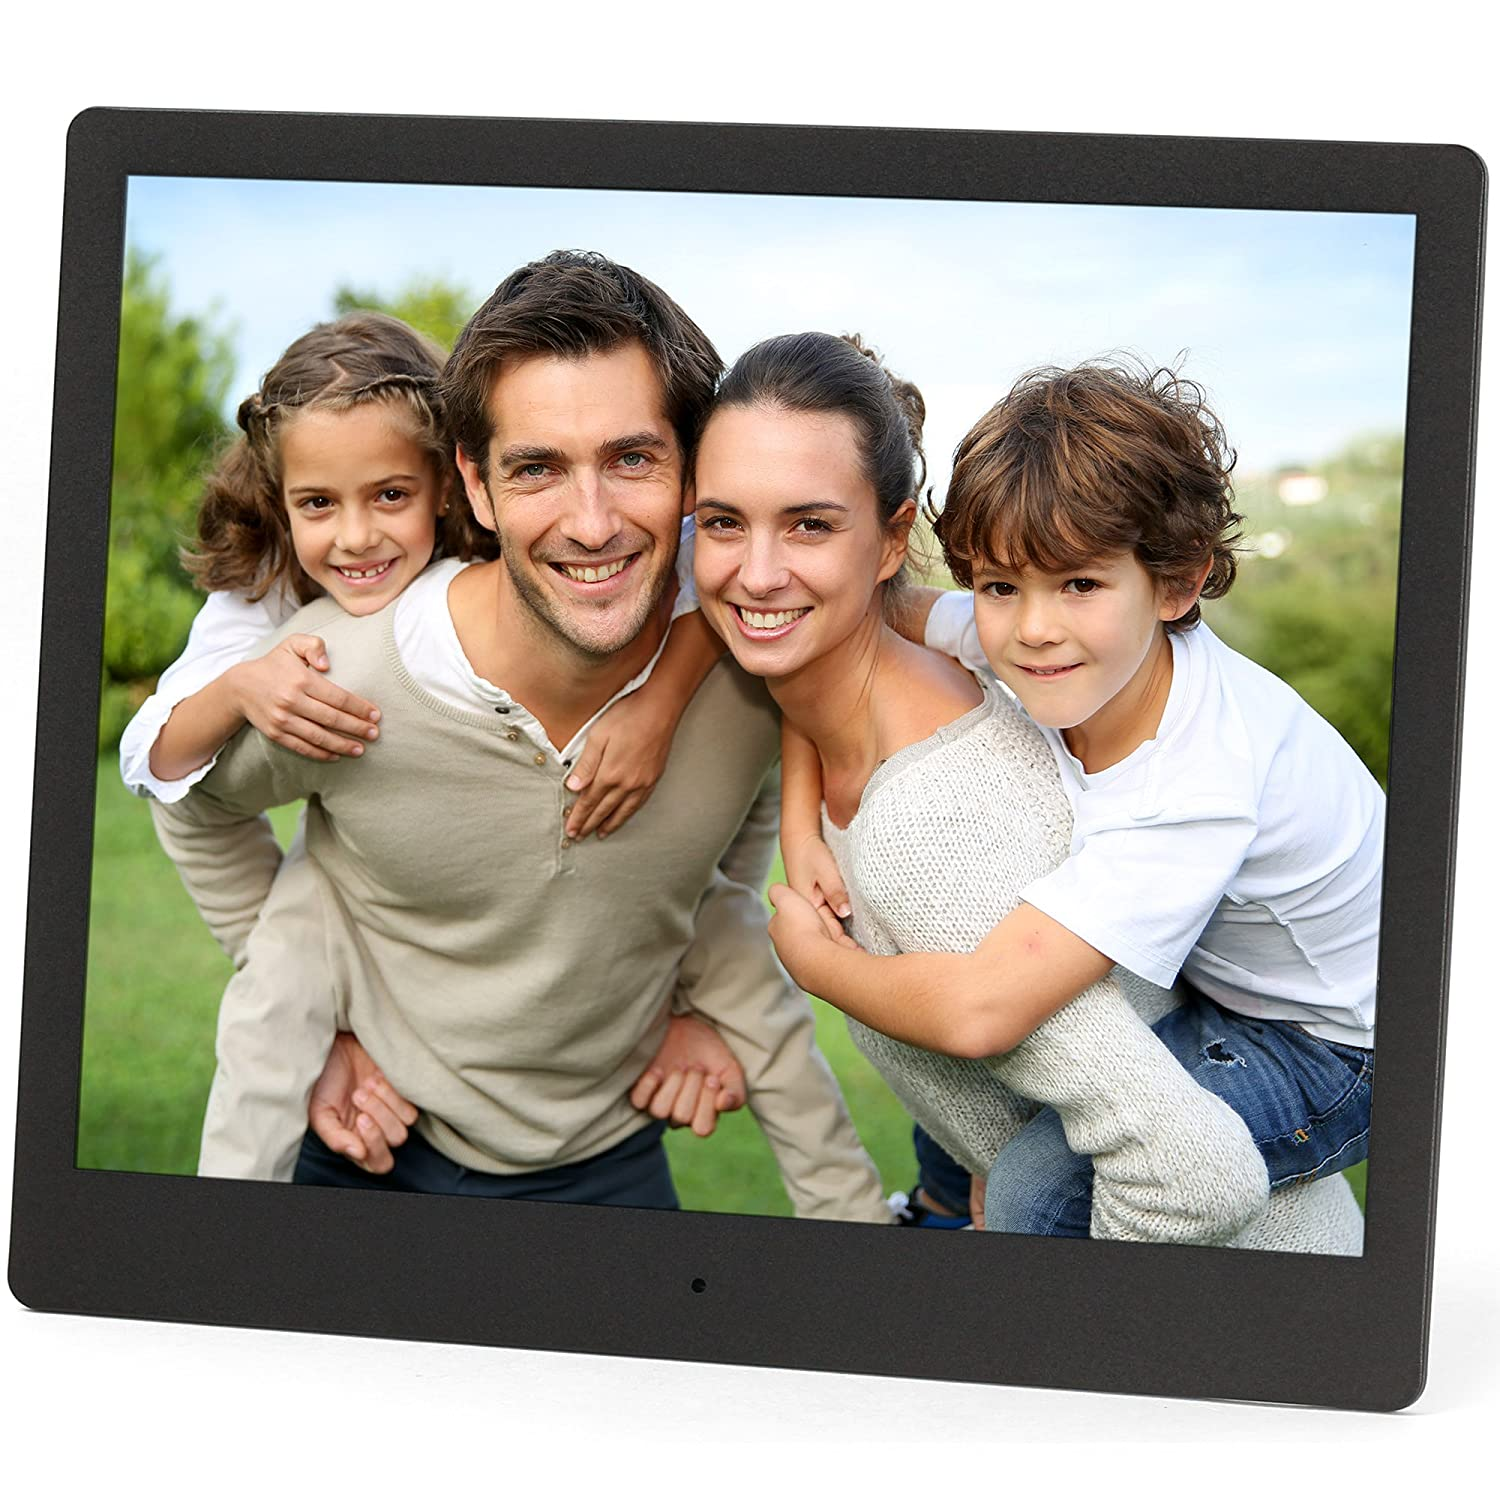 Amazon digital picture frames electronics micca neo 10 inch digital photo frame with 8gb storage high resolution ips lcd jeuxipadfo Images